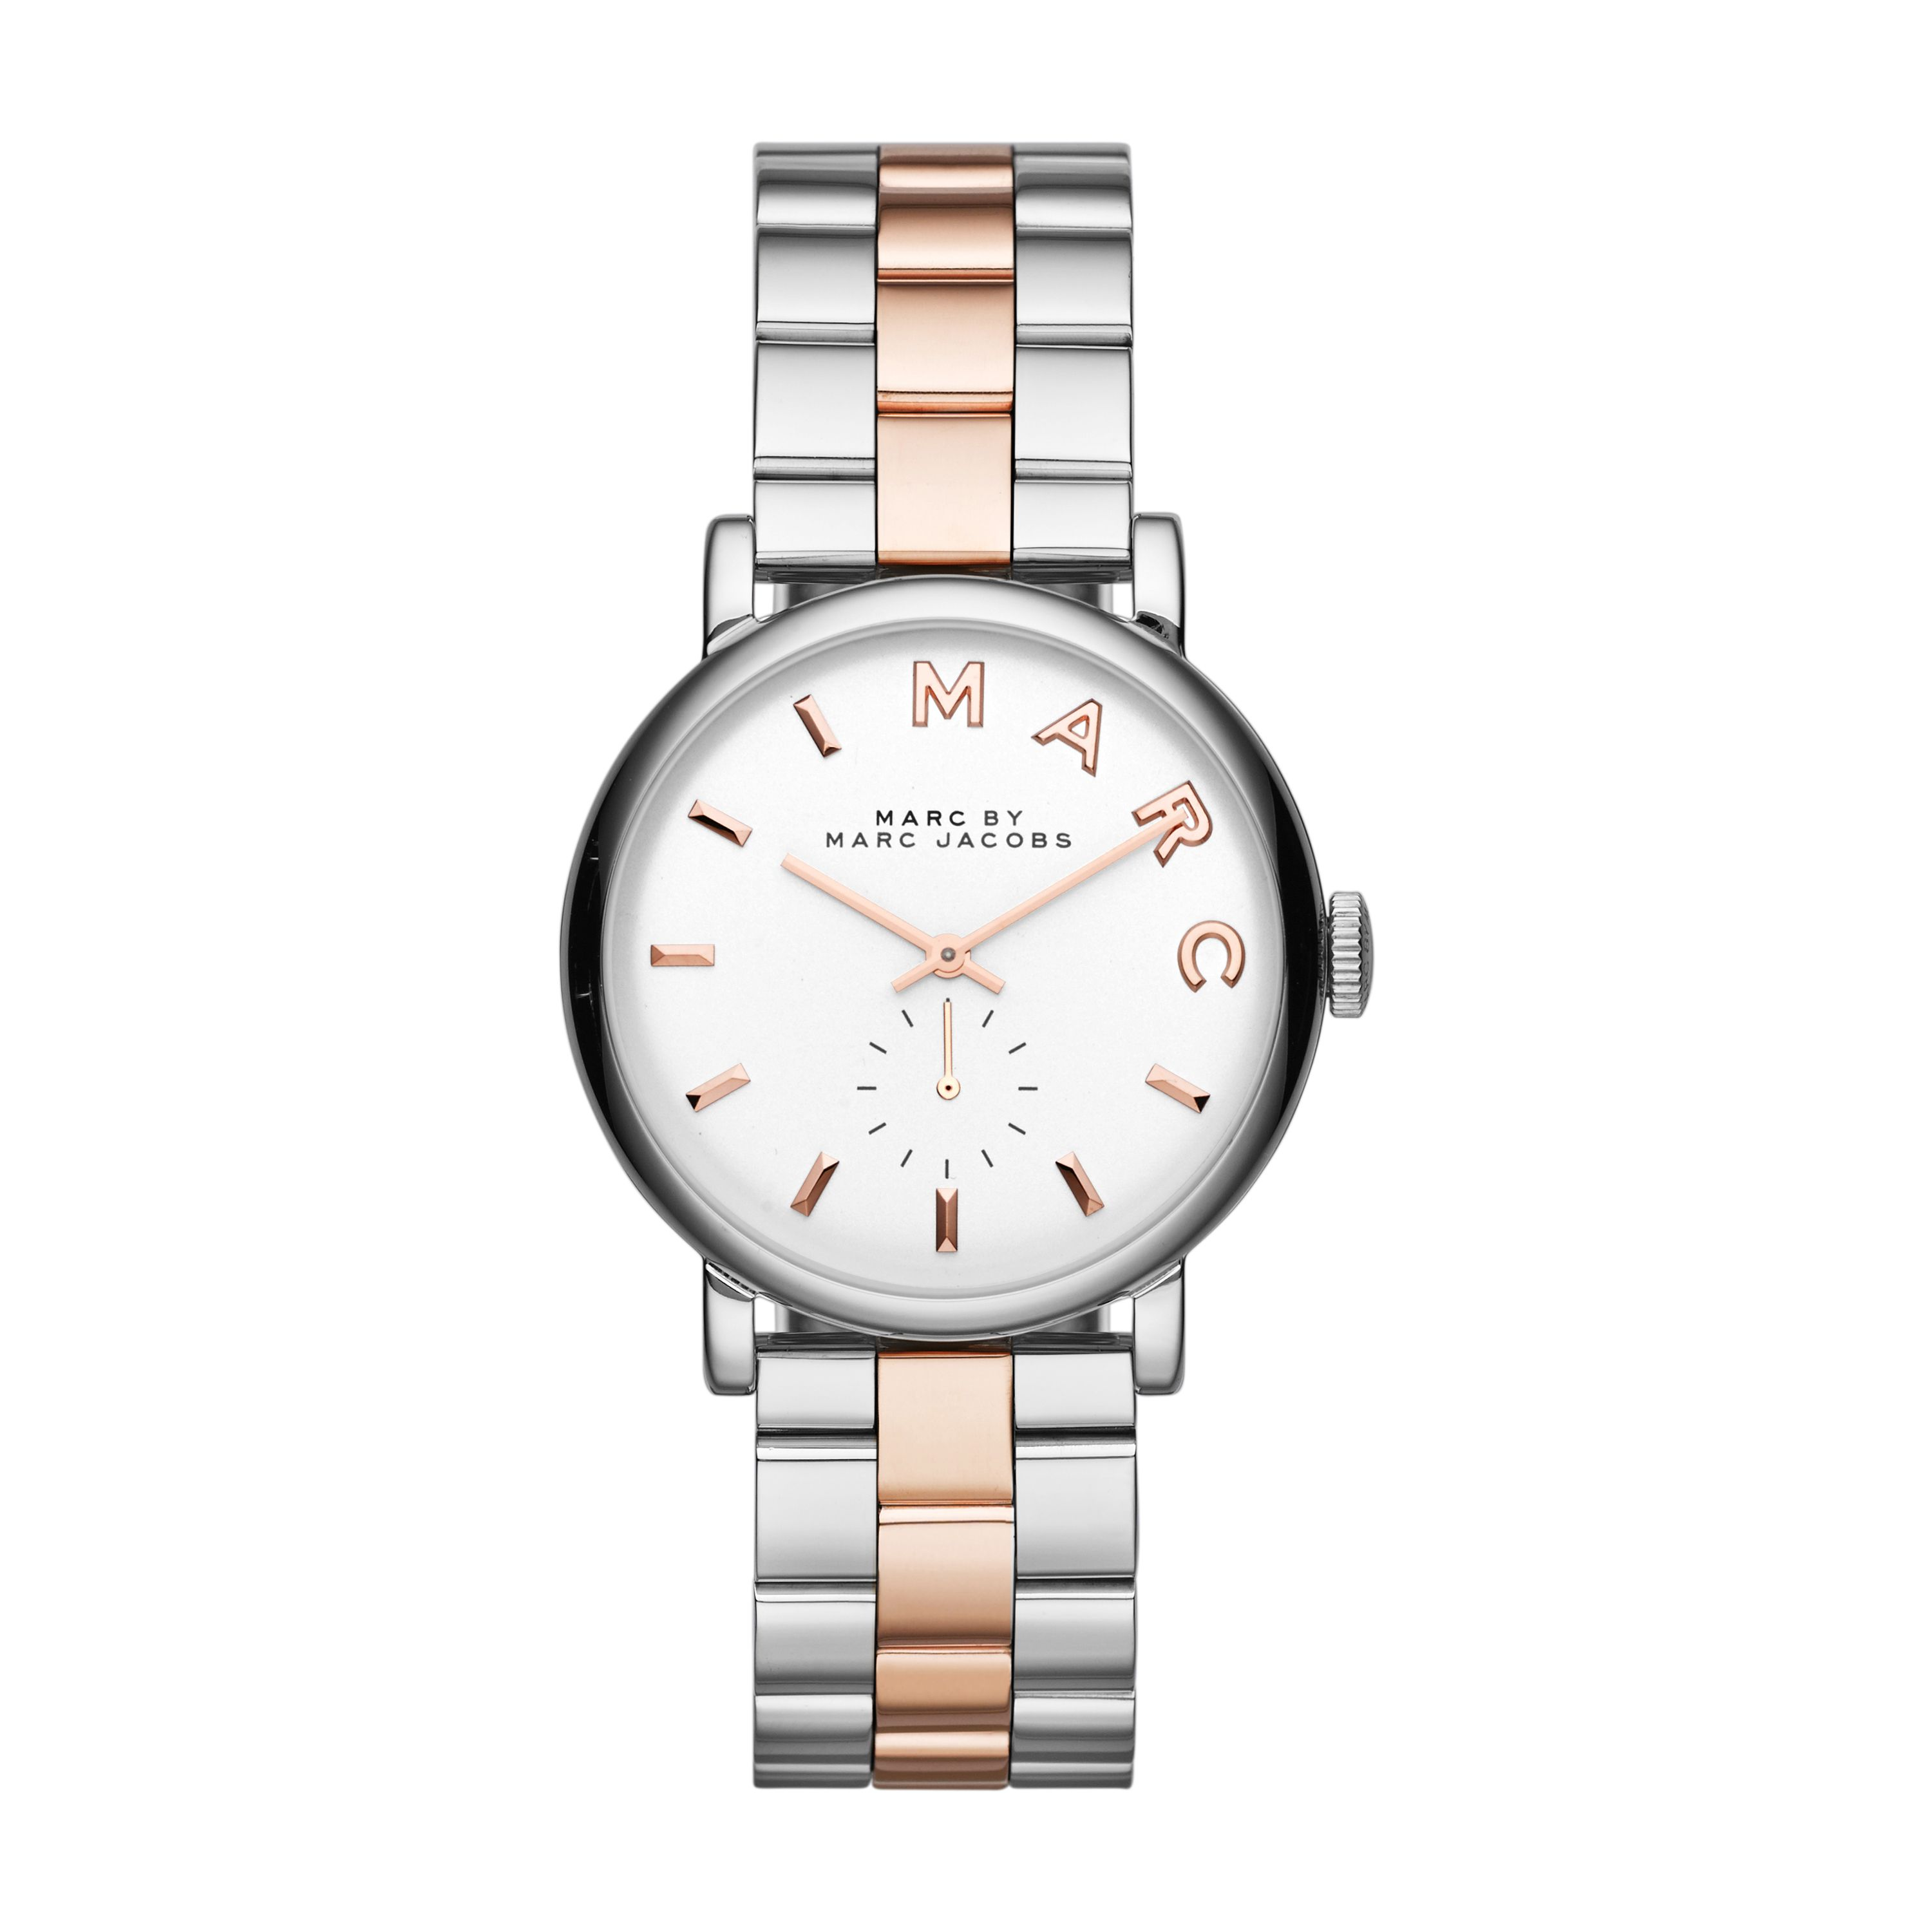 MBM3312 Baker ladies rose gold bracelet watch